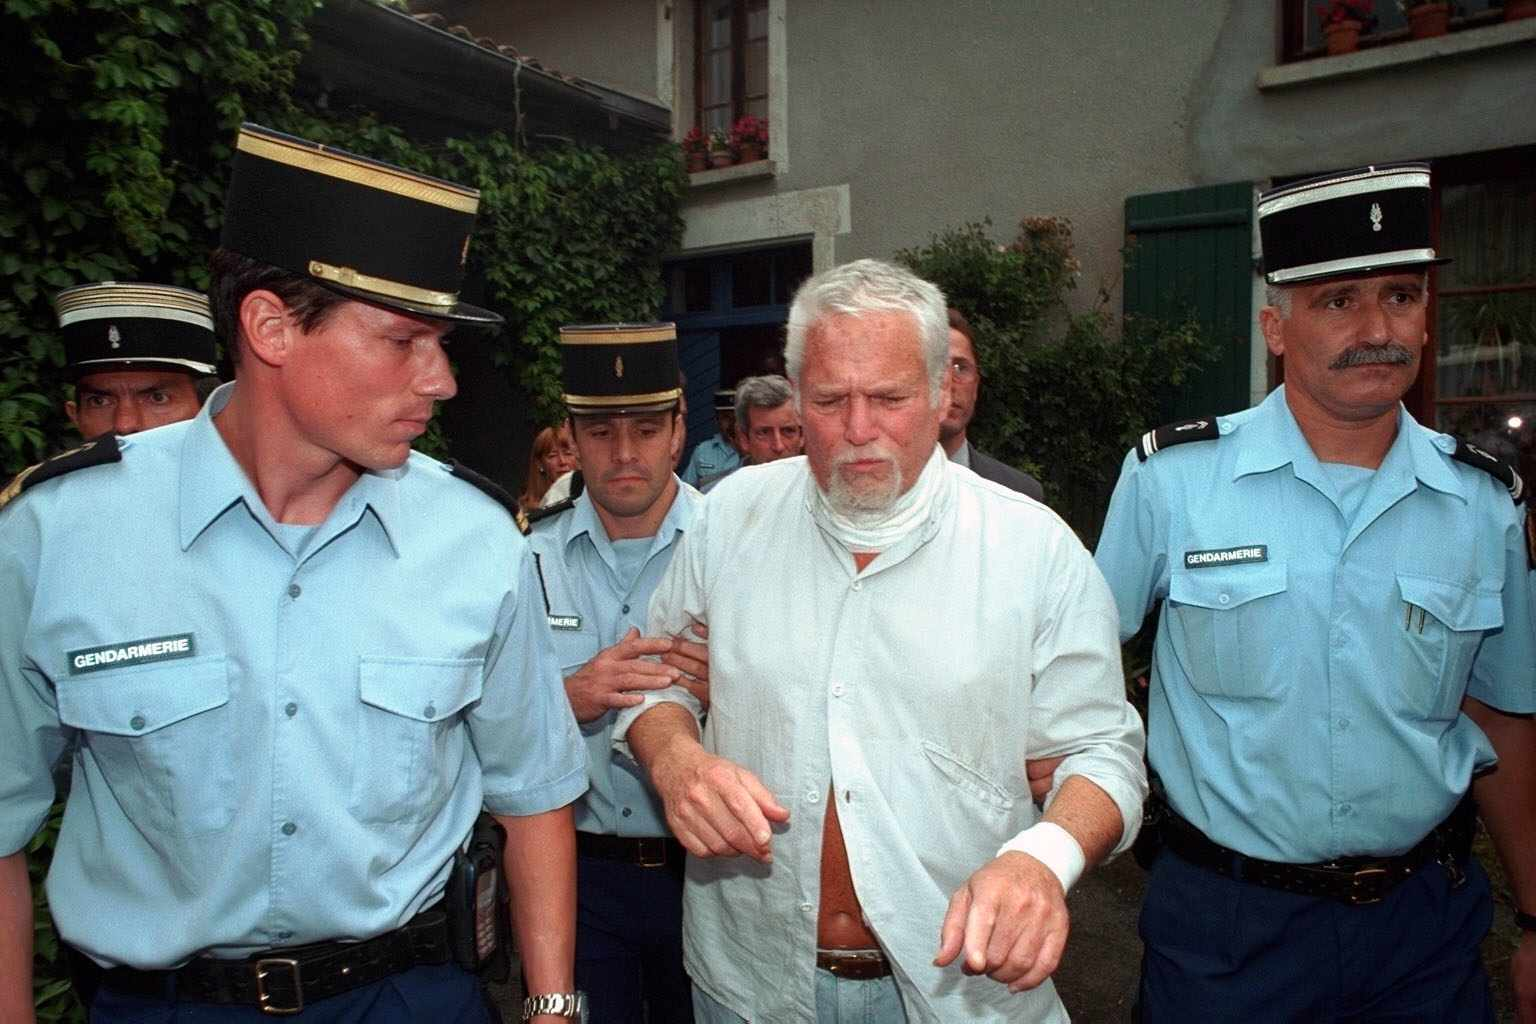 Ira Einhorn was taken to the police at 8pm after his extradition was announced.